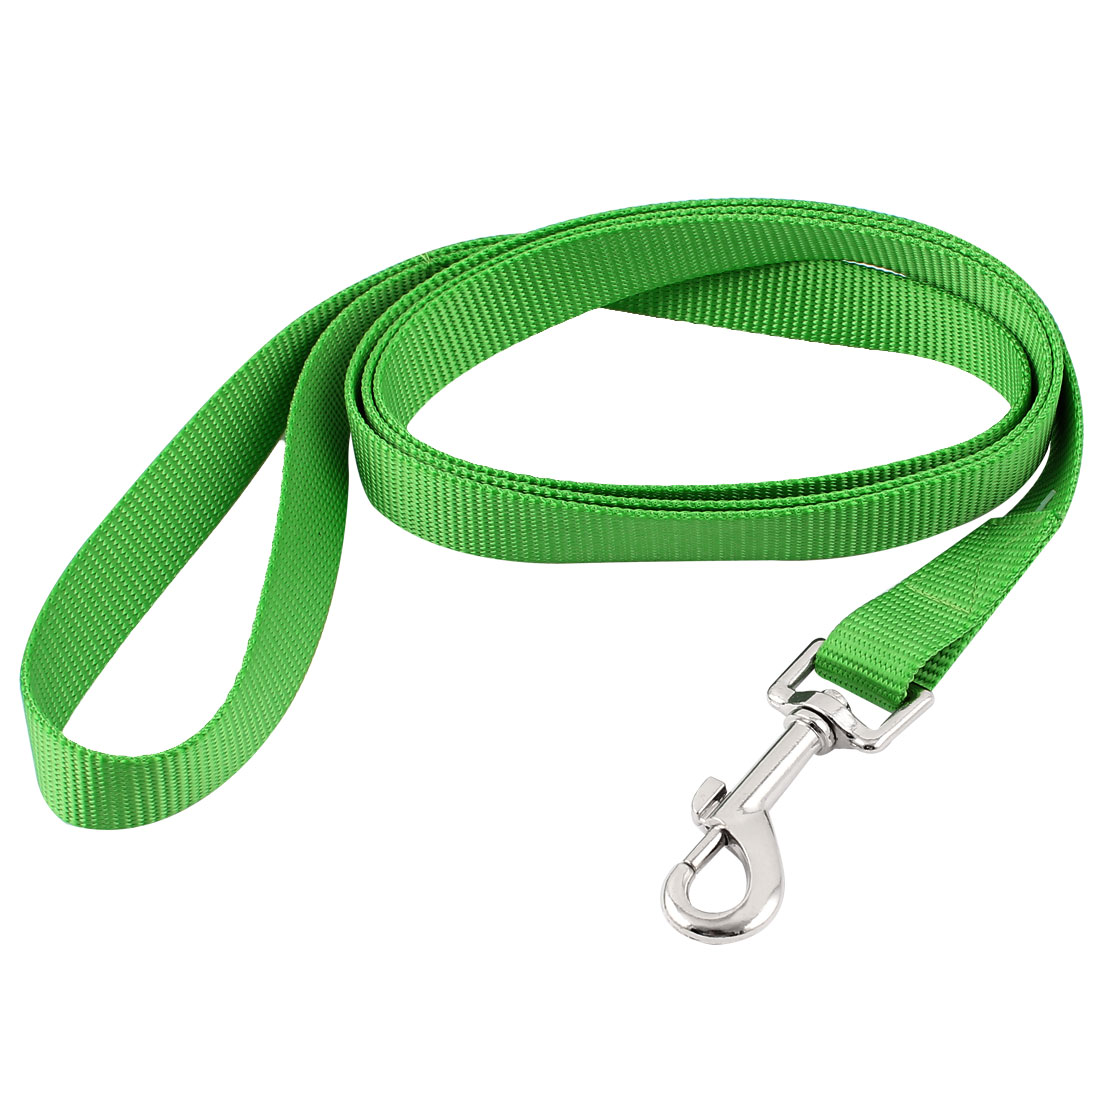 Pet Dog Puppy Swivel Hook Training Walk Lead Nylon Leash Rope 150cm Long Green